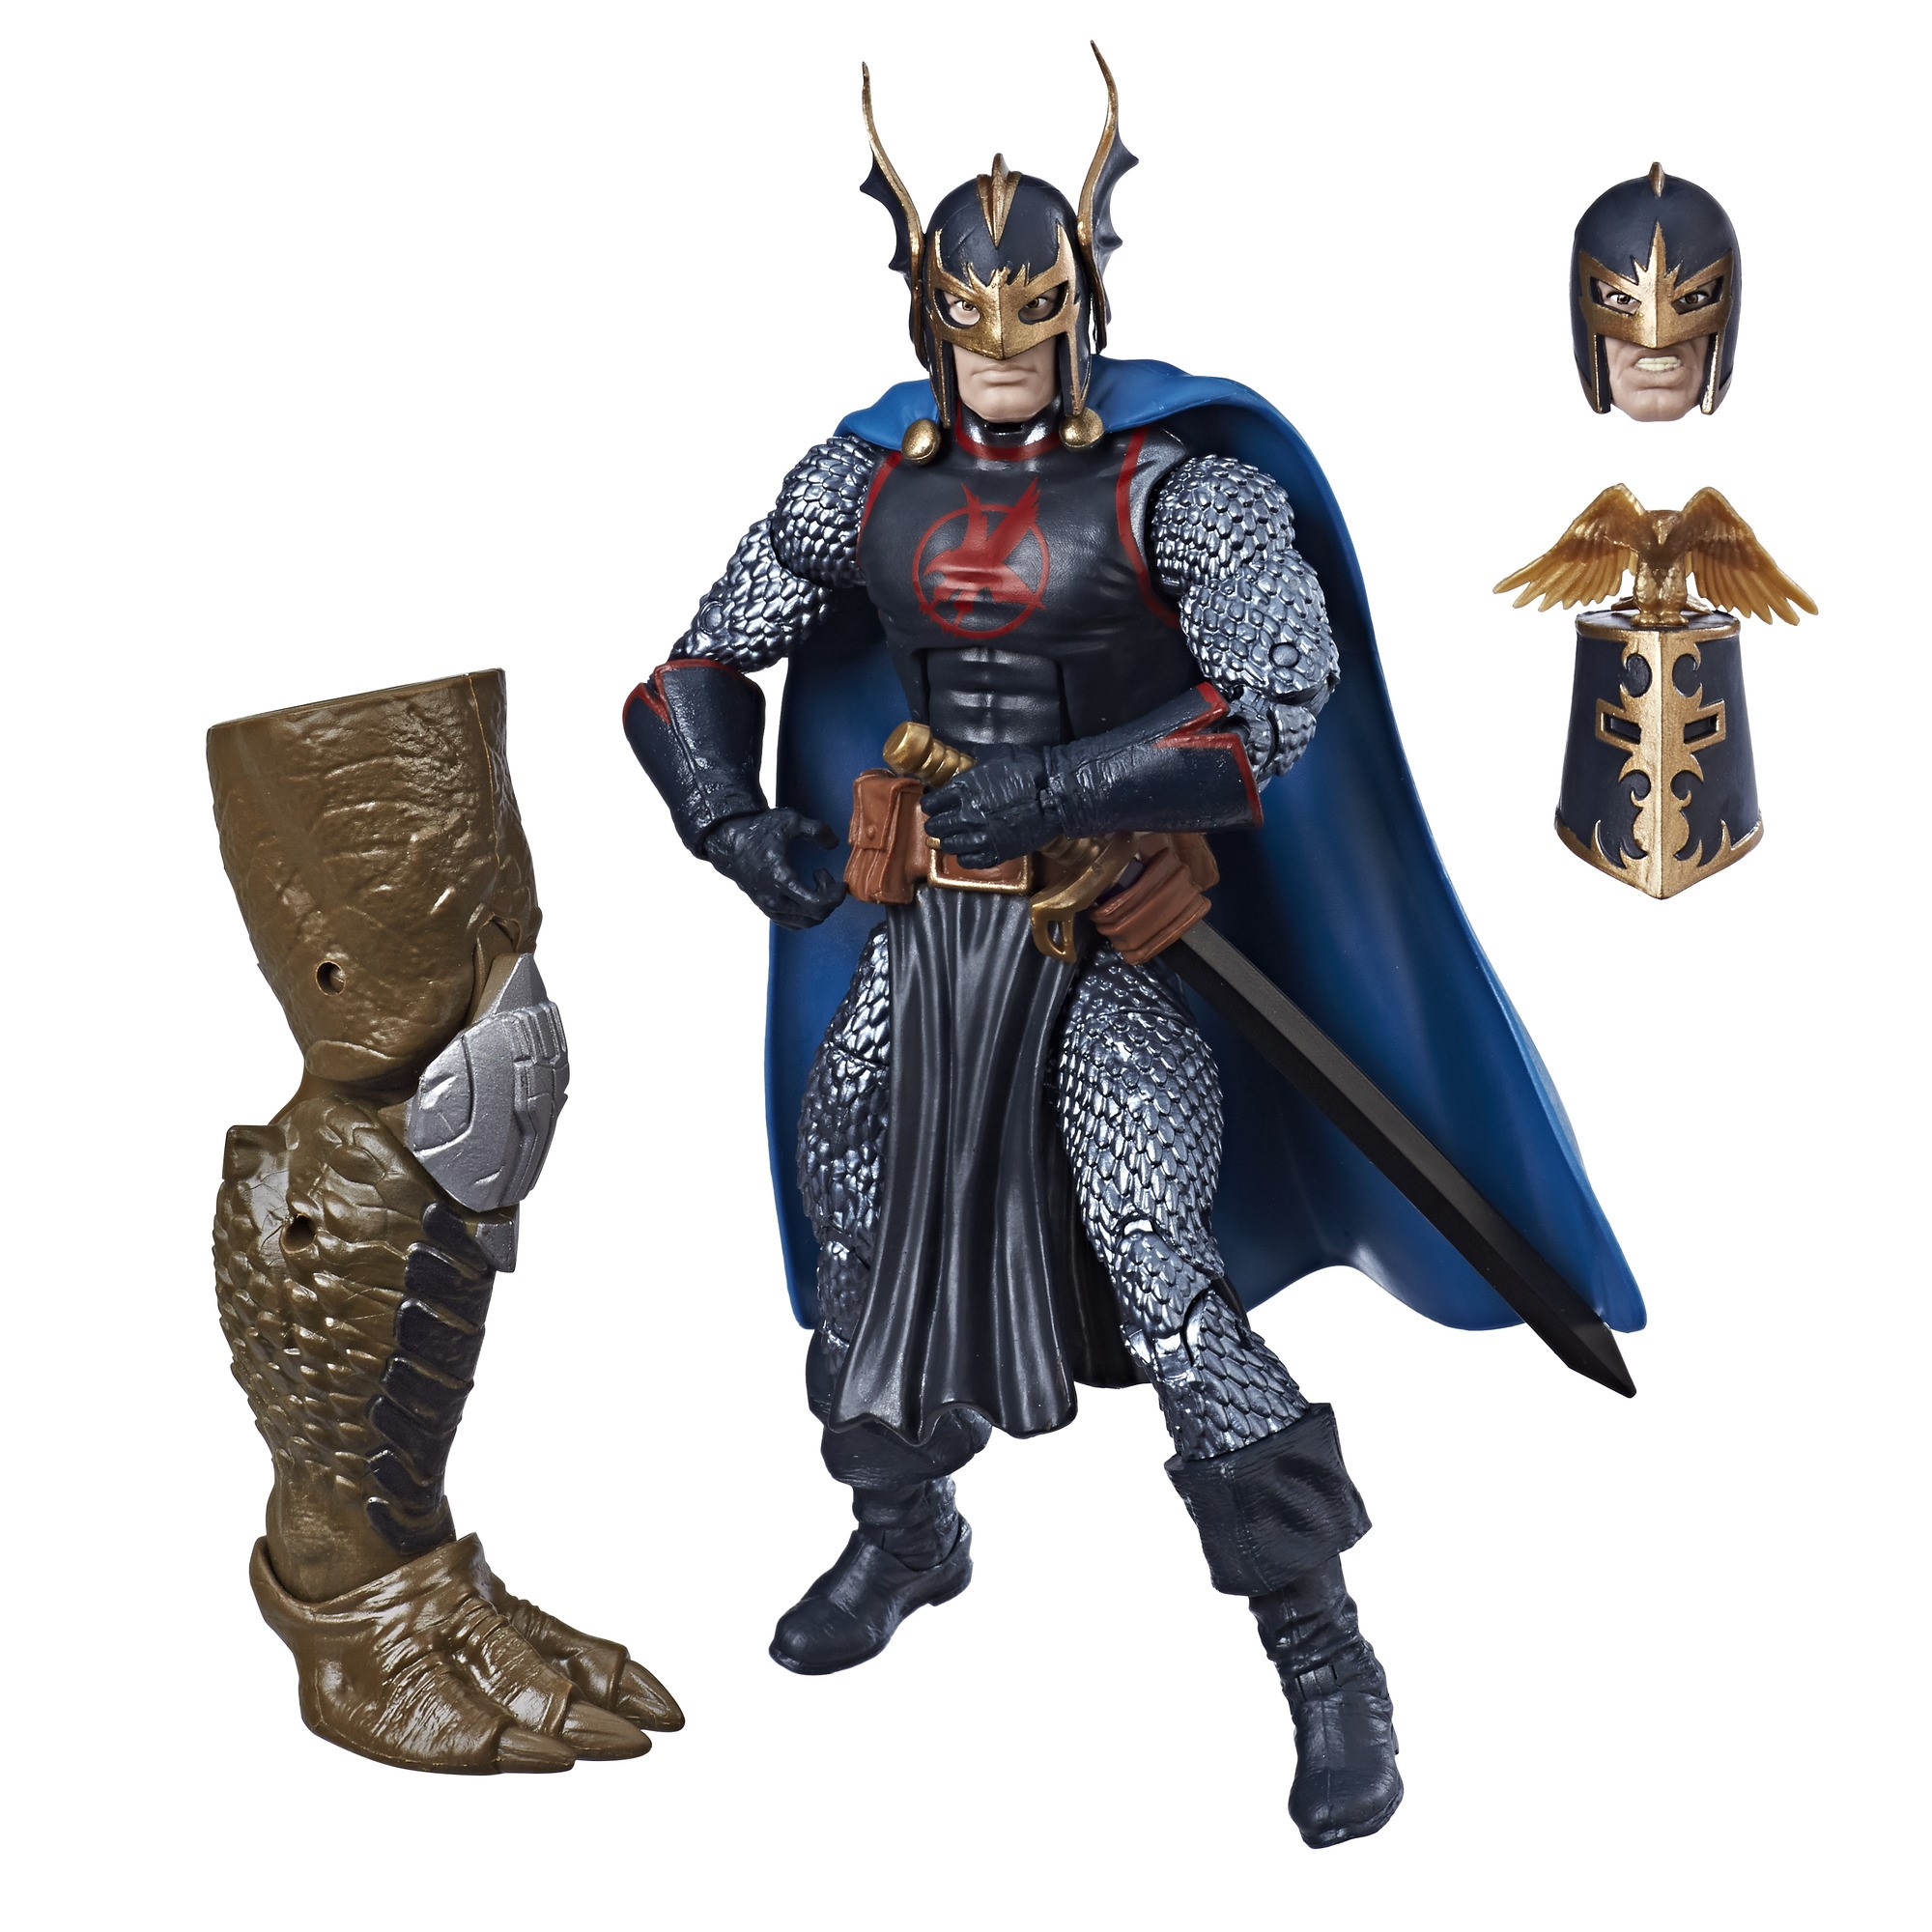 "Marvel Avengers Legends Series Black Knight 6"" Inch Action Figure"